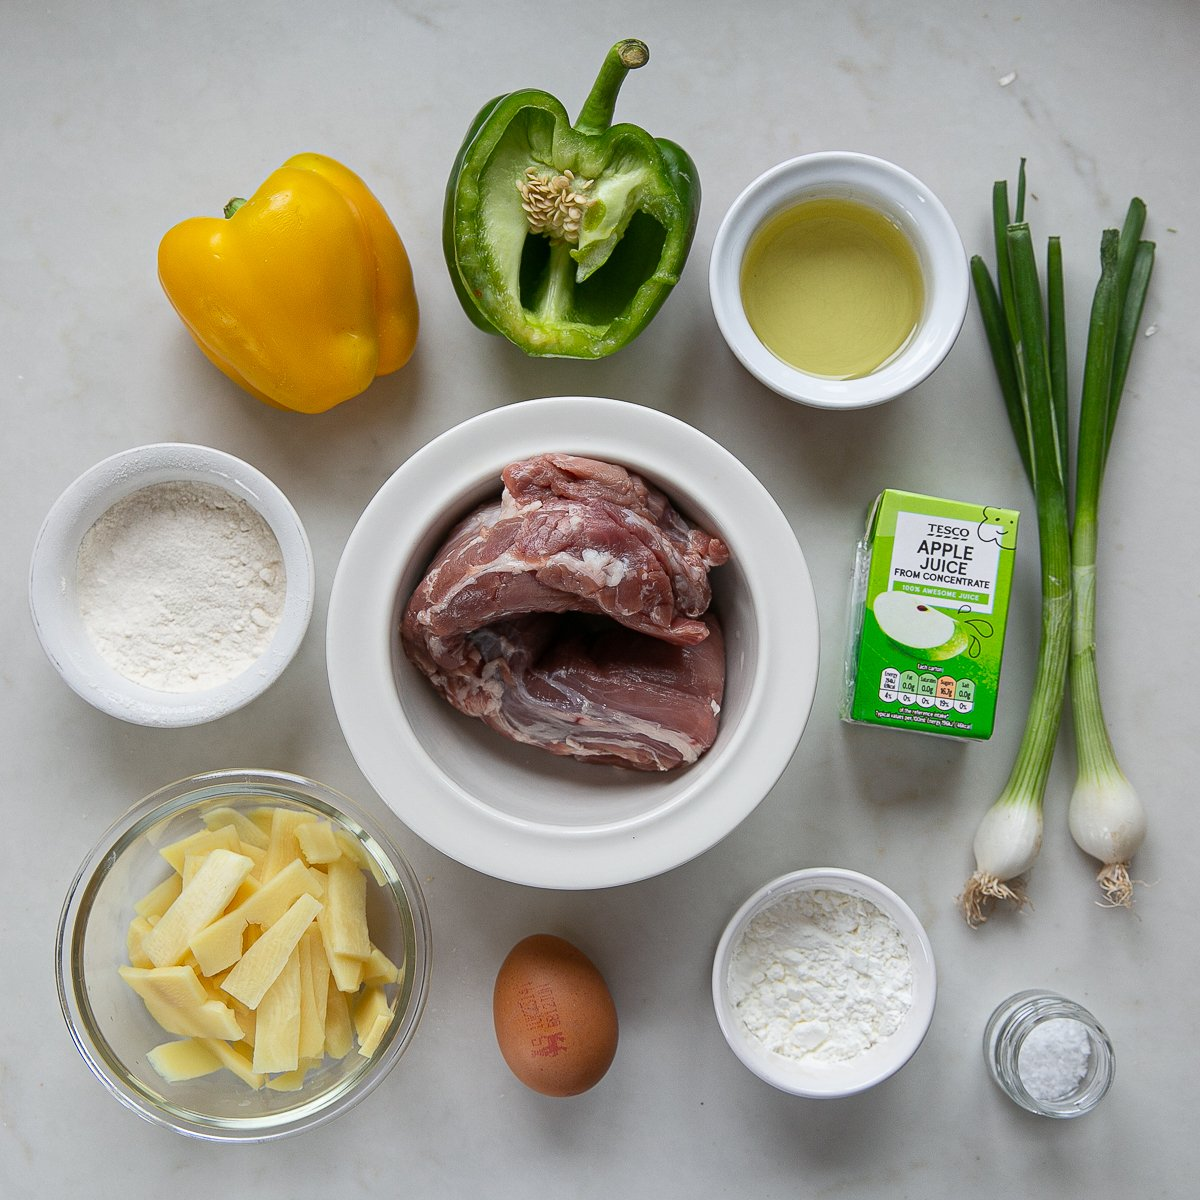 all the ingredients needed to make Sticky Pork Stir Fry